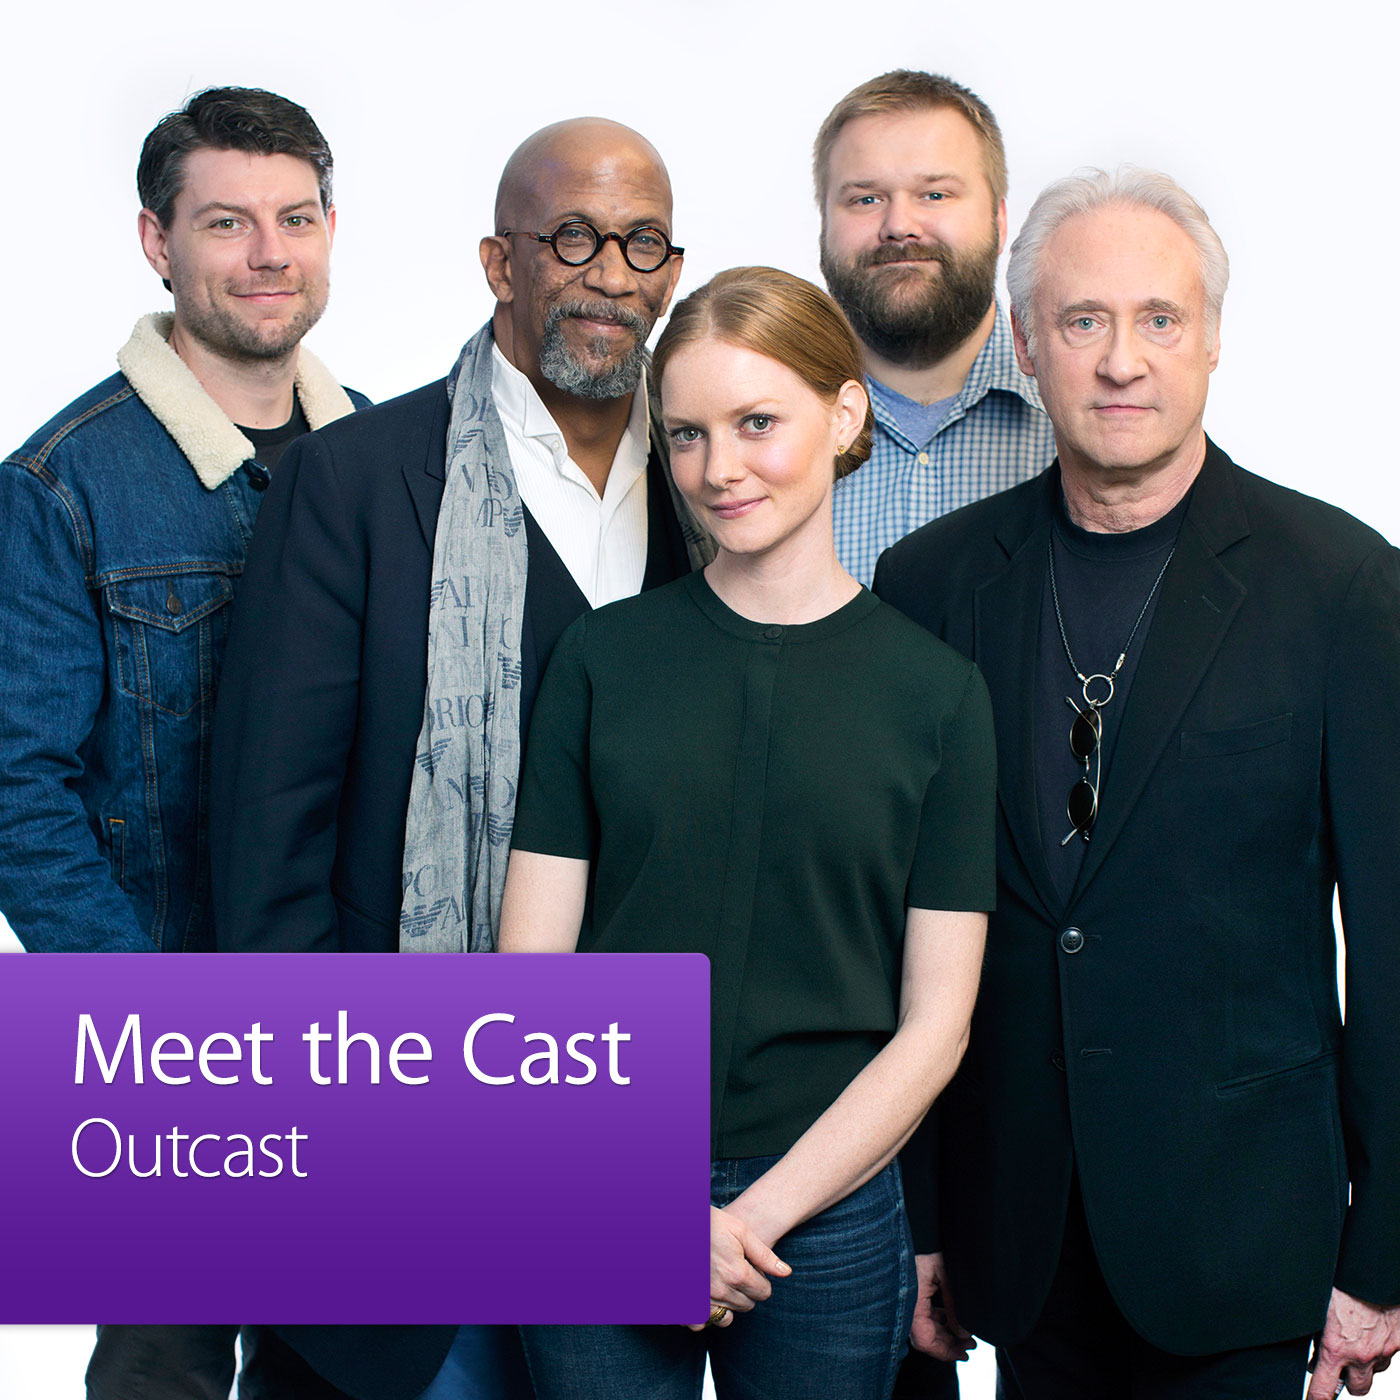 Outcast: Meet the Cast